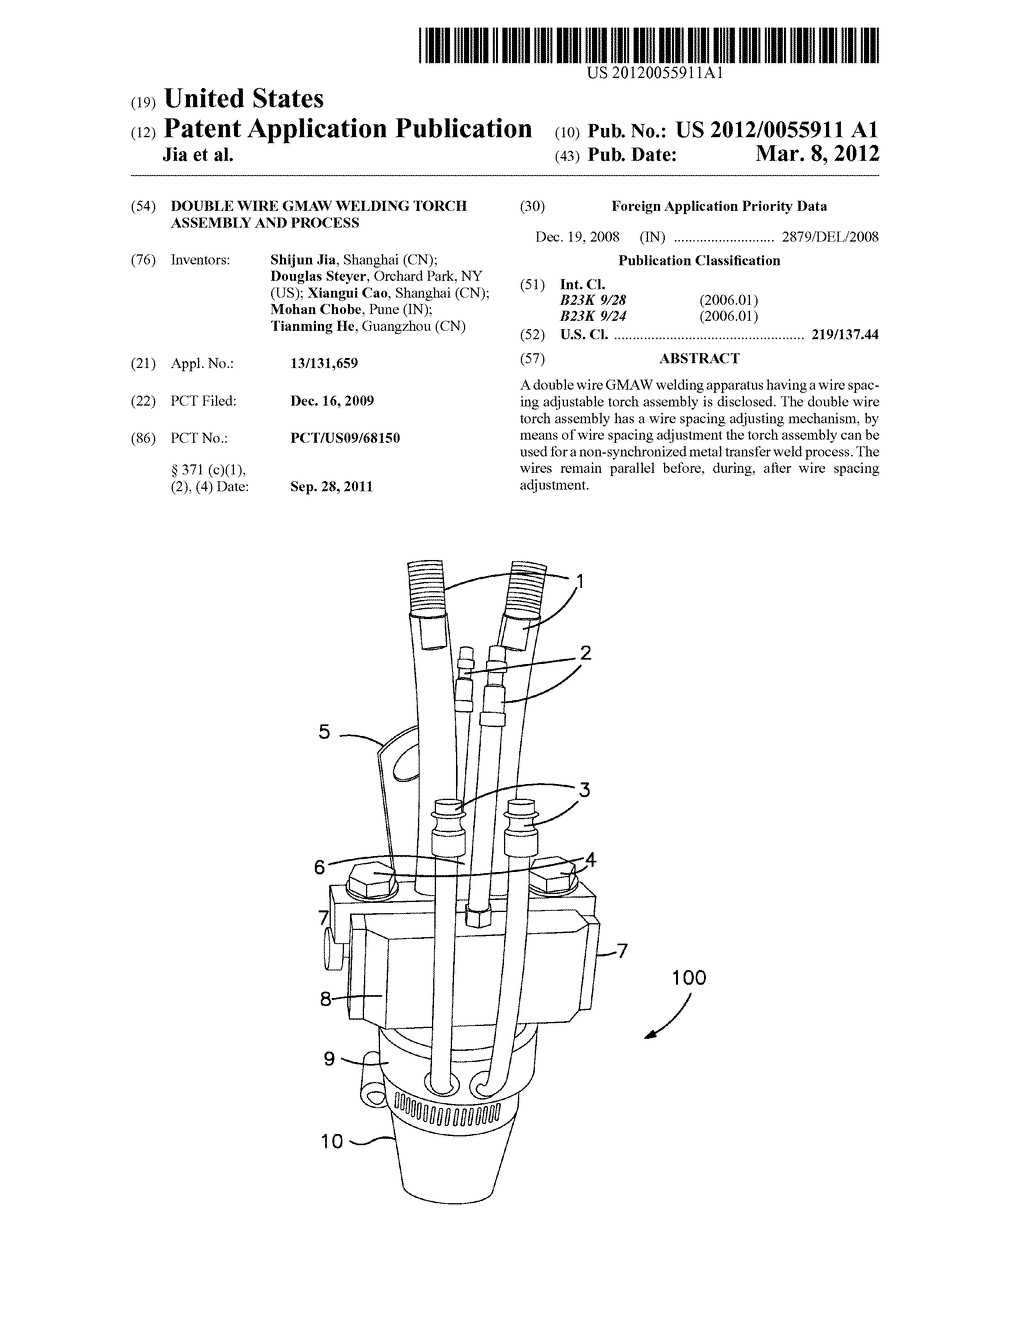 Double Wire Gmaw Welding Torch Assembly And Process Diagram Of Schematic Image 01